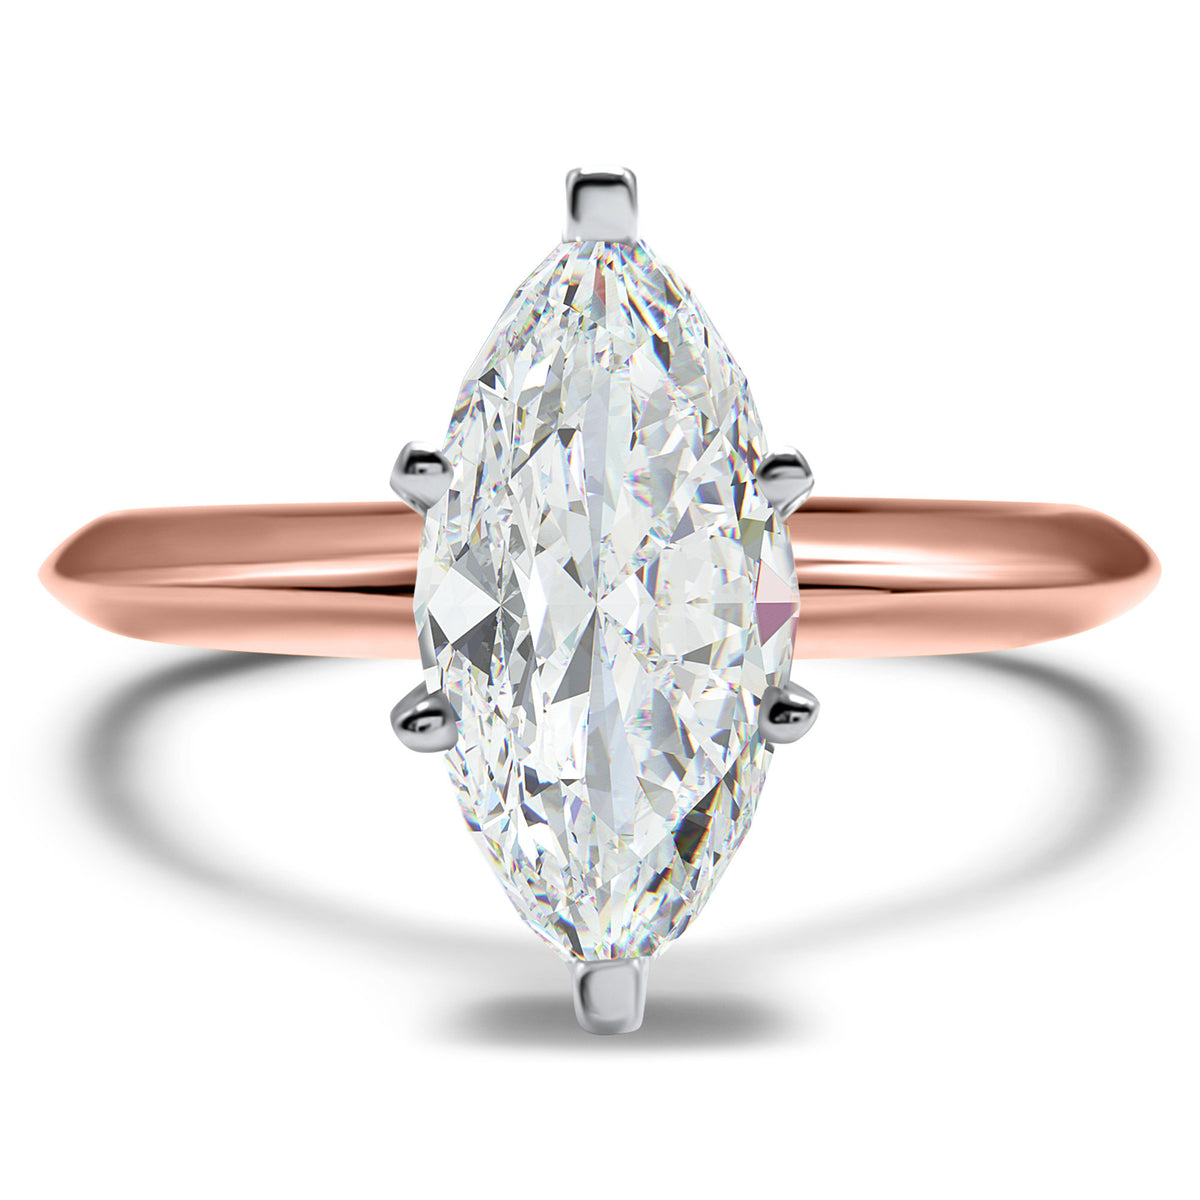 CZ Cubic Zirconia solitaire engagement ring 14K Rose Gold 1 carat 6 prong